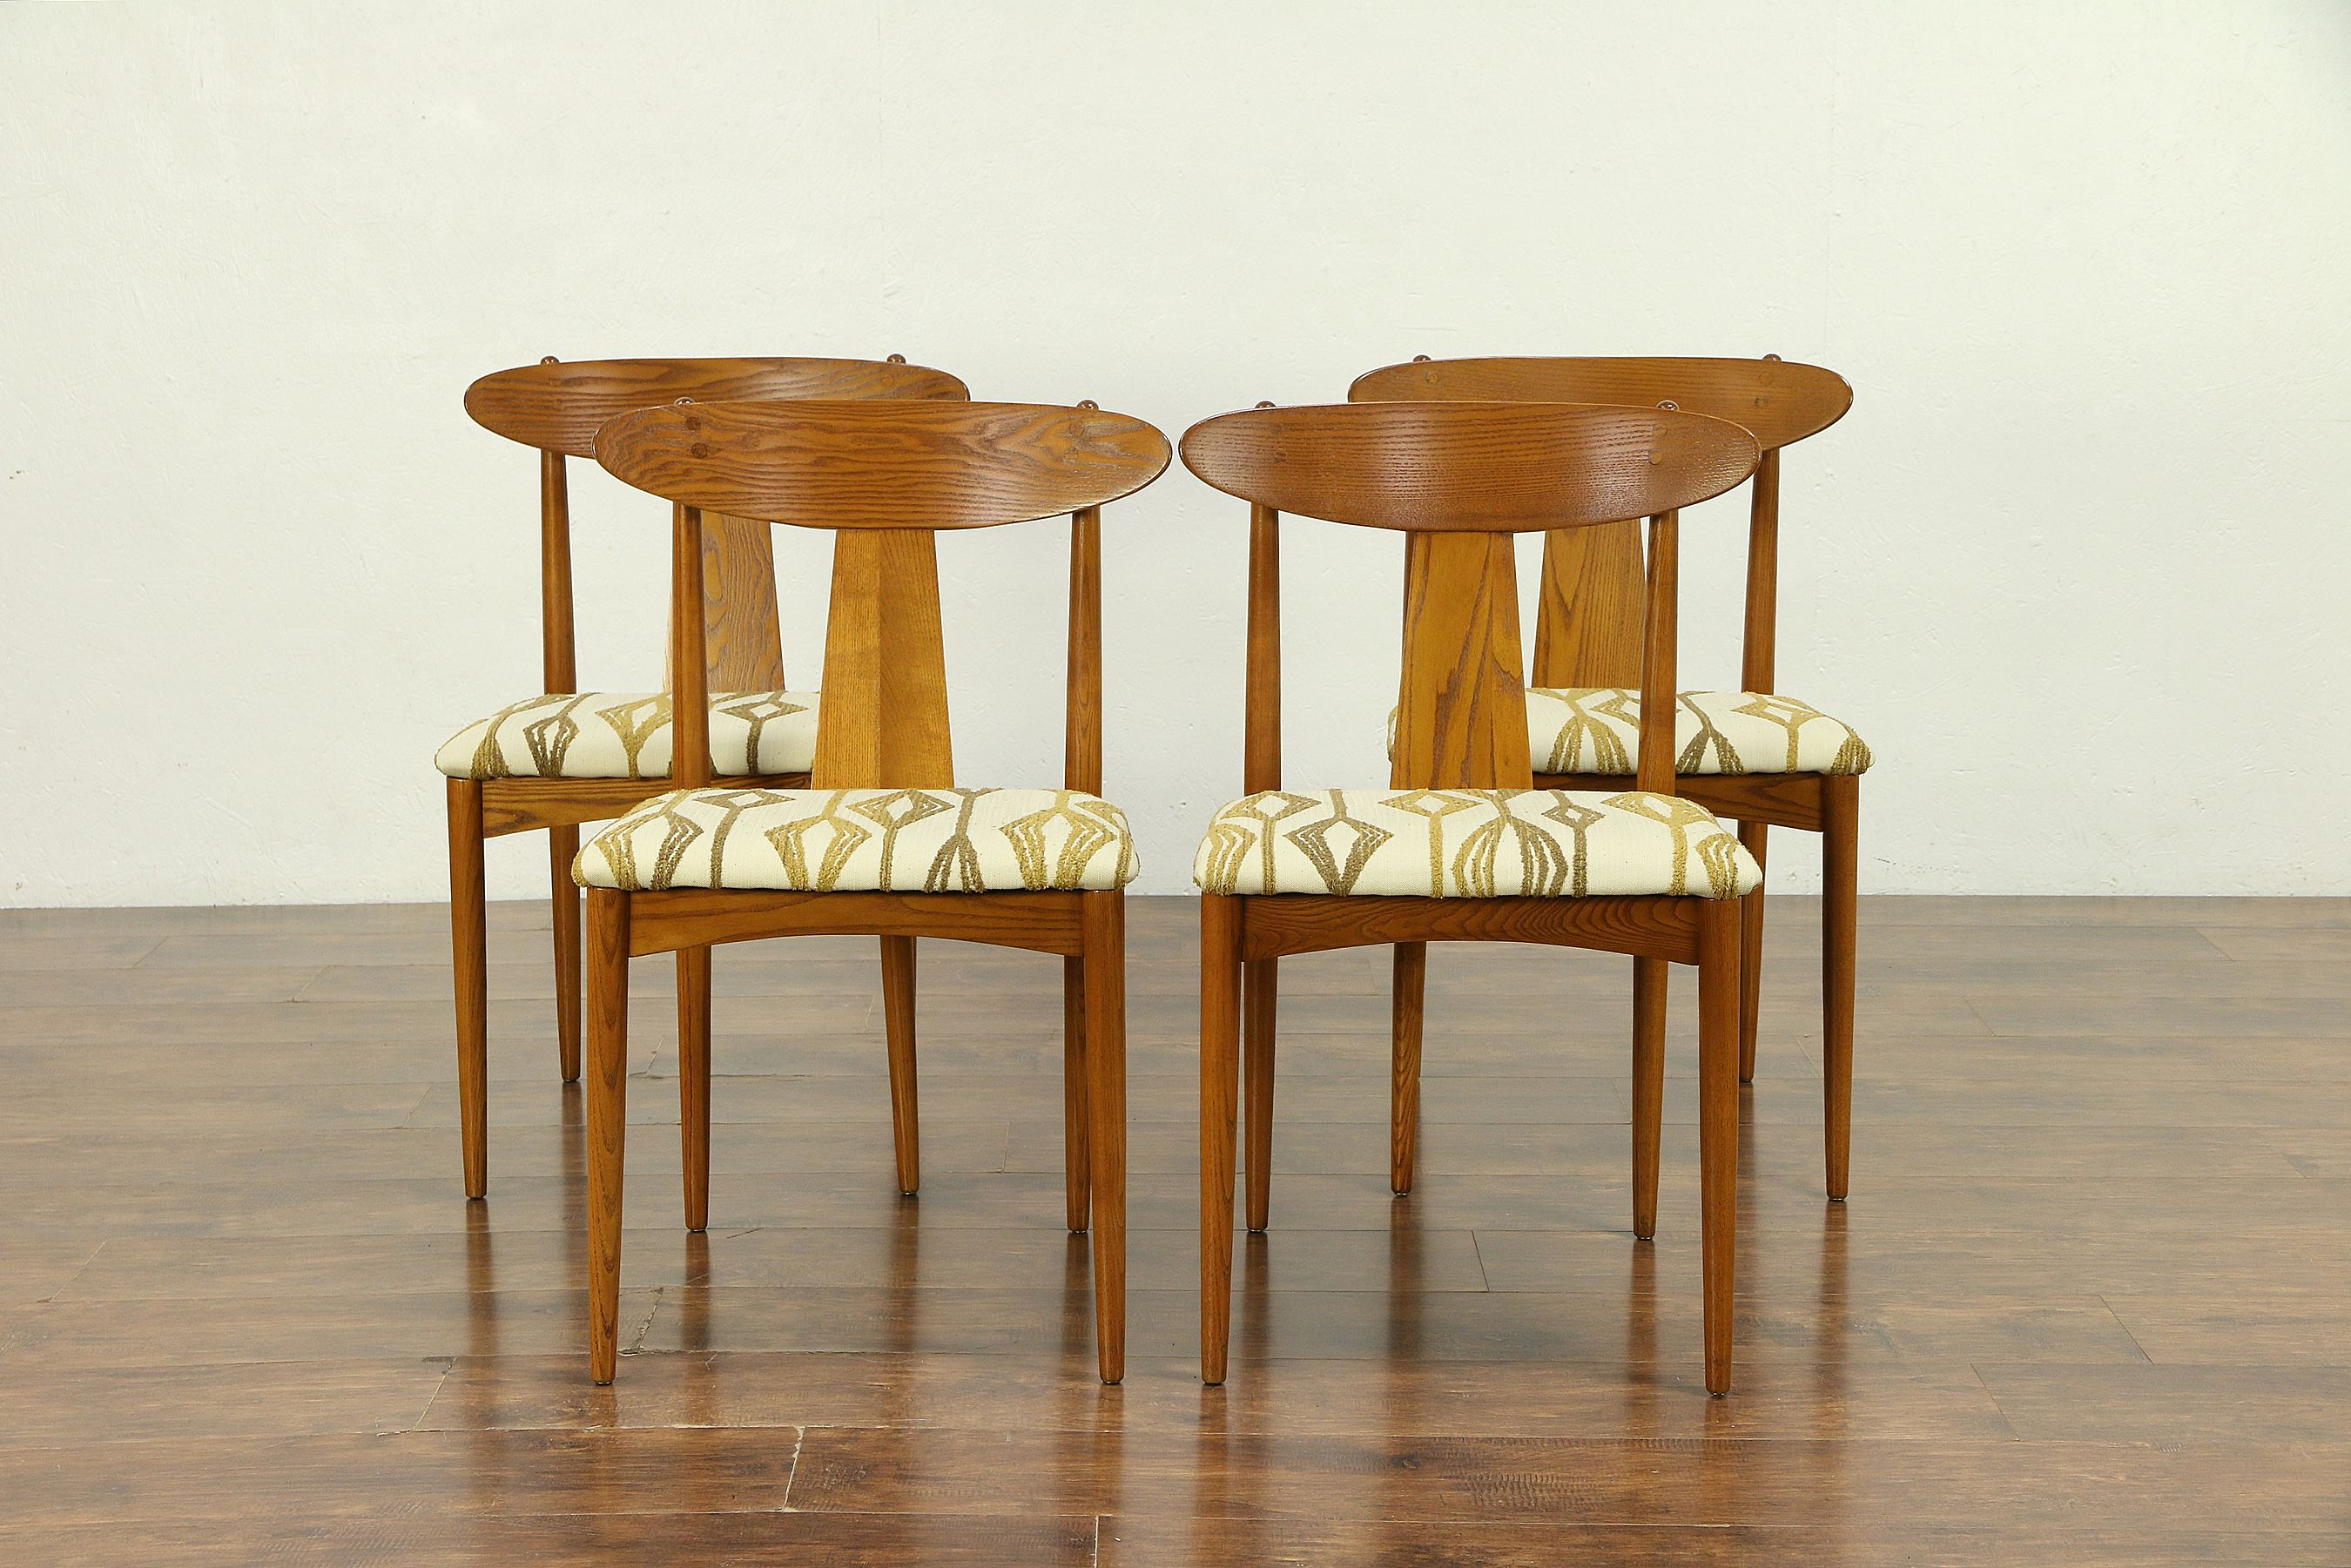 danish modern dining chair posture seat for couch set of 4 midcentury 1960 vintage chairs new upholstery 30319 harp gallery